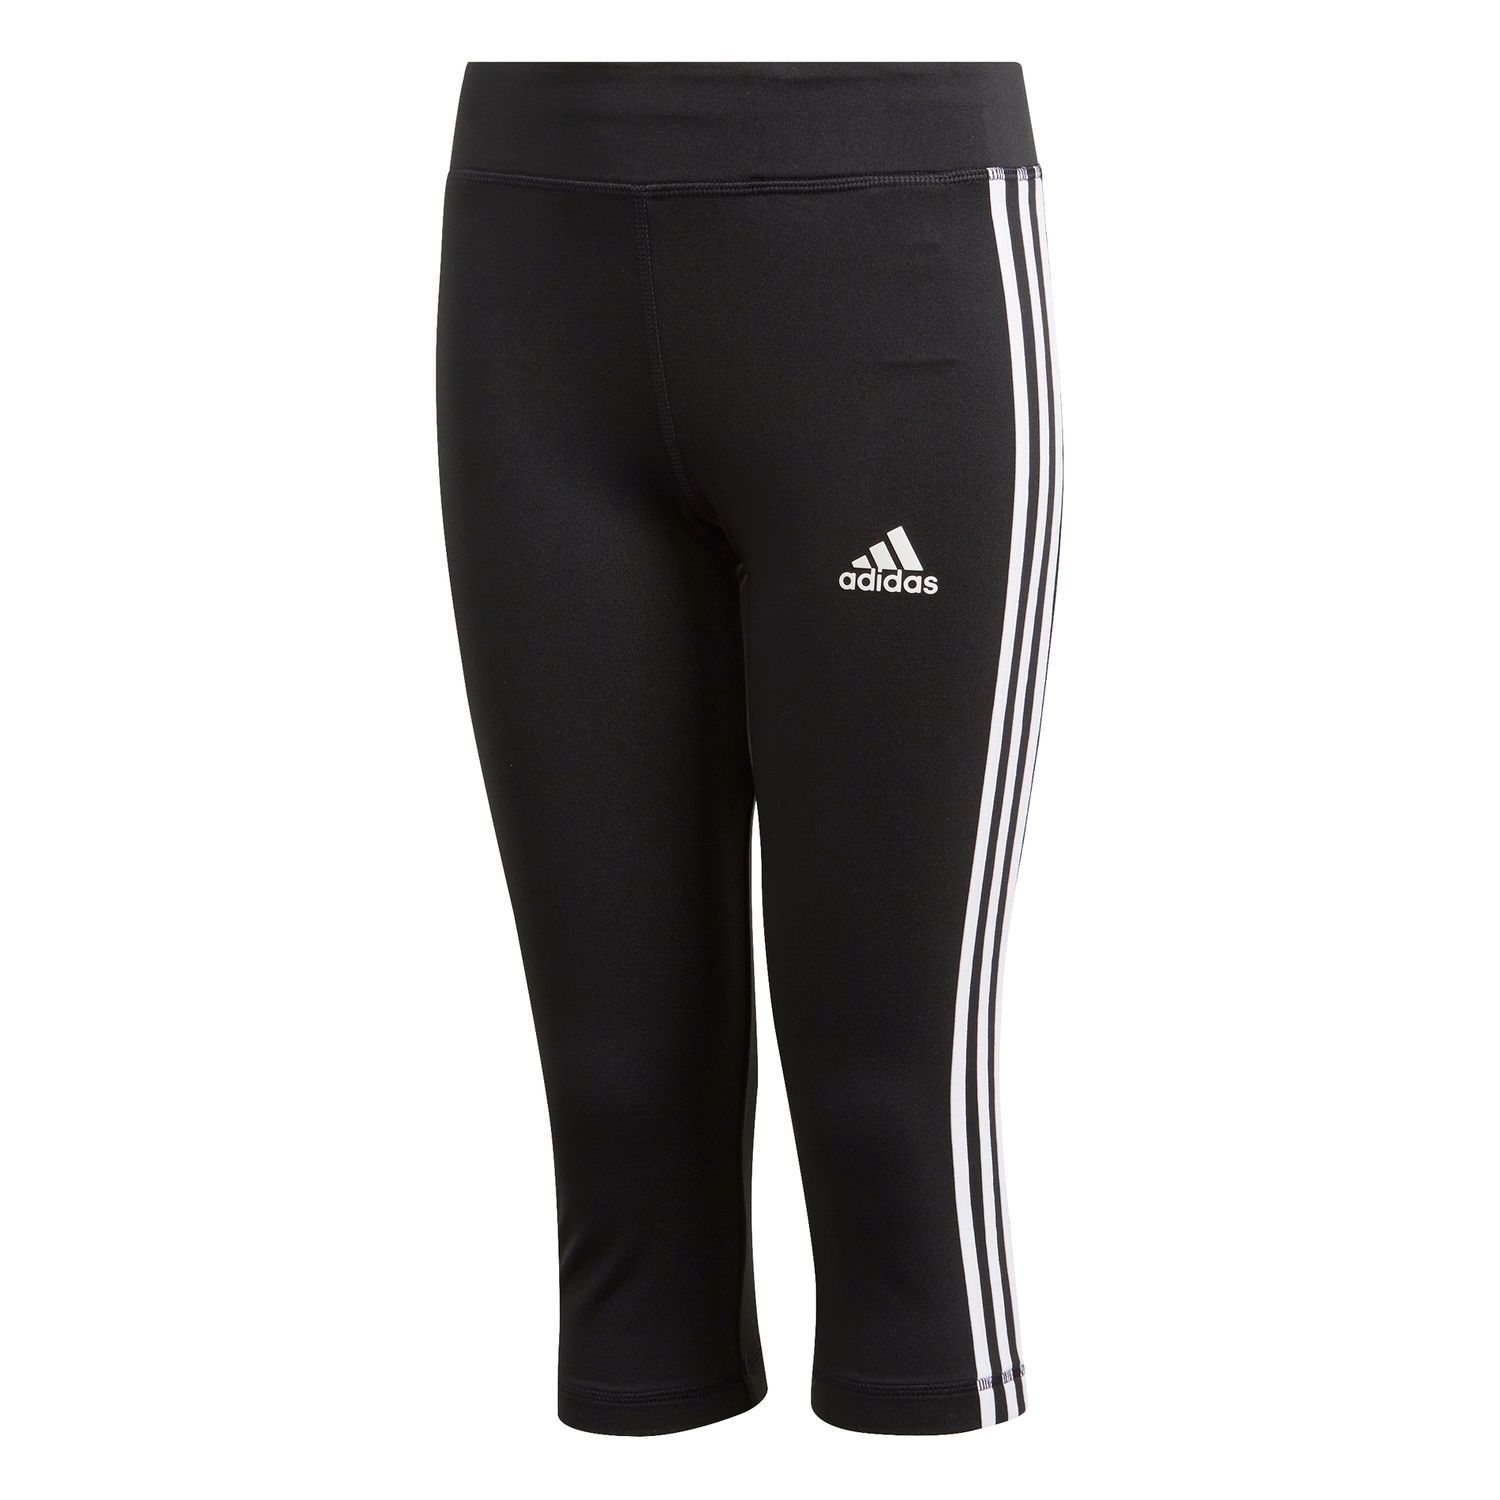 adidas Equipment 3-Streifen Kinder 3/4 Tight Leggings – Bild 1